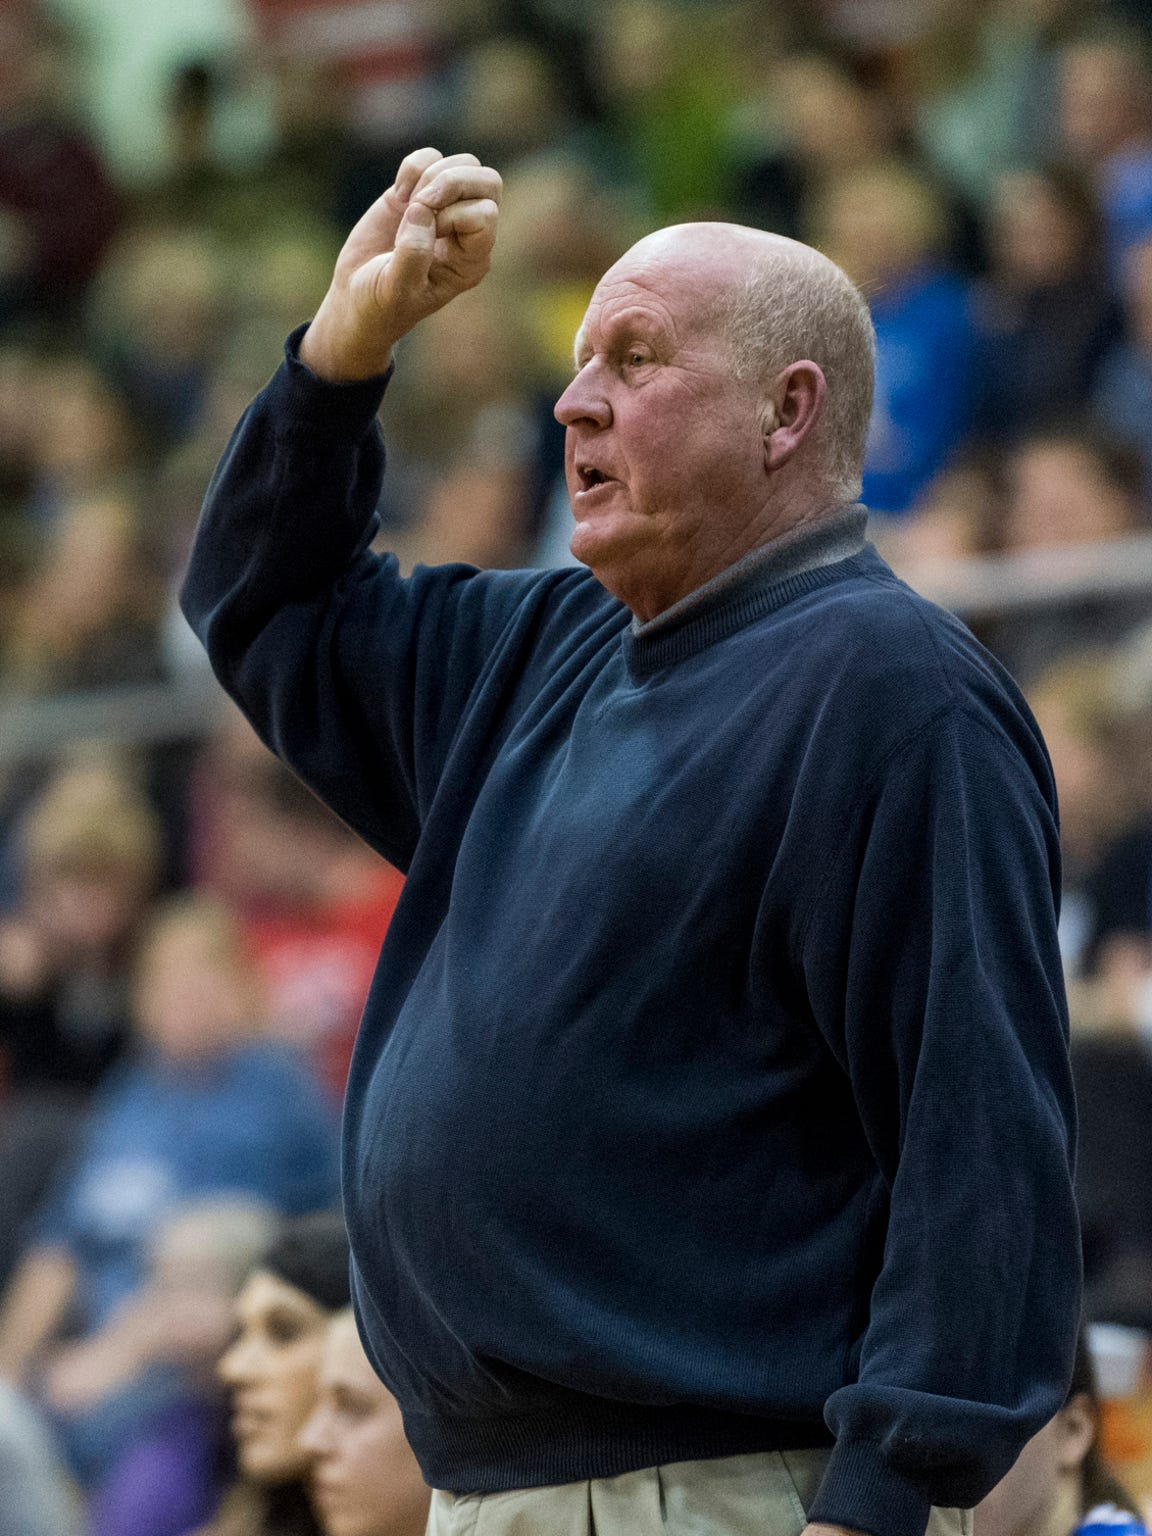 Memorial Head Coach Bruce Dockery calls out a defensive play as his team takes on the Castle Knights during the SIAC Tournament Championship match at Harrison High School in Evansville, Ind., Saturday, Jan. 20, 2018.